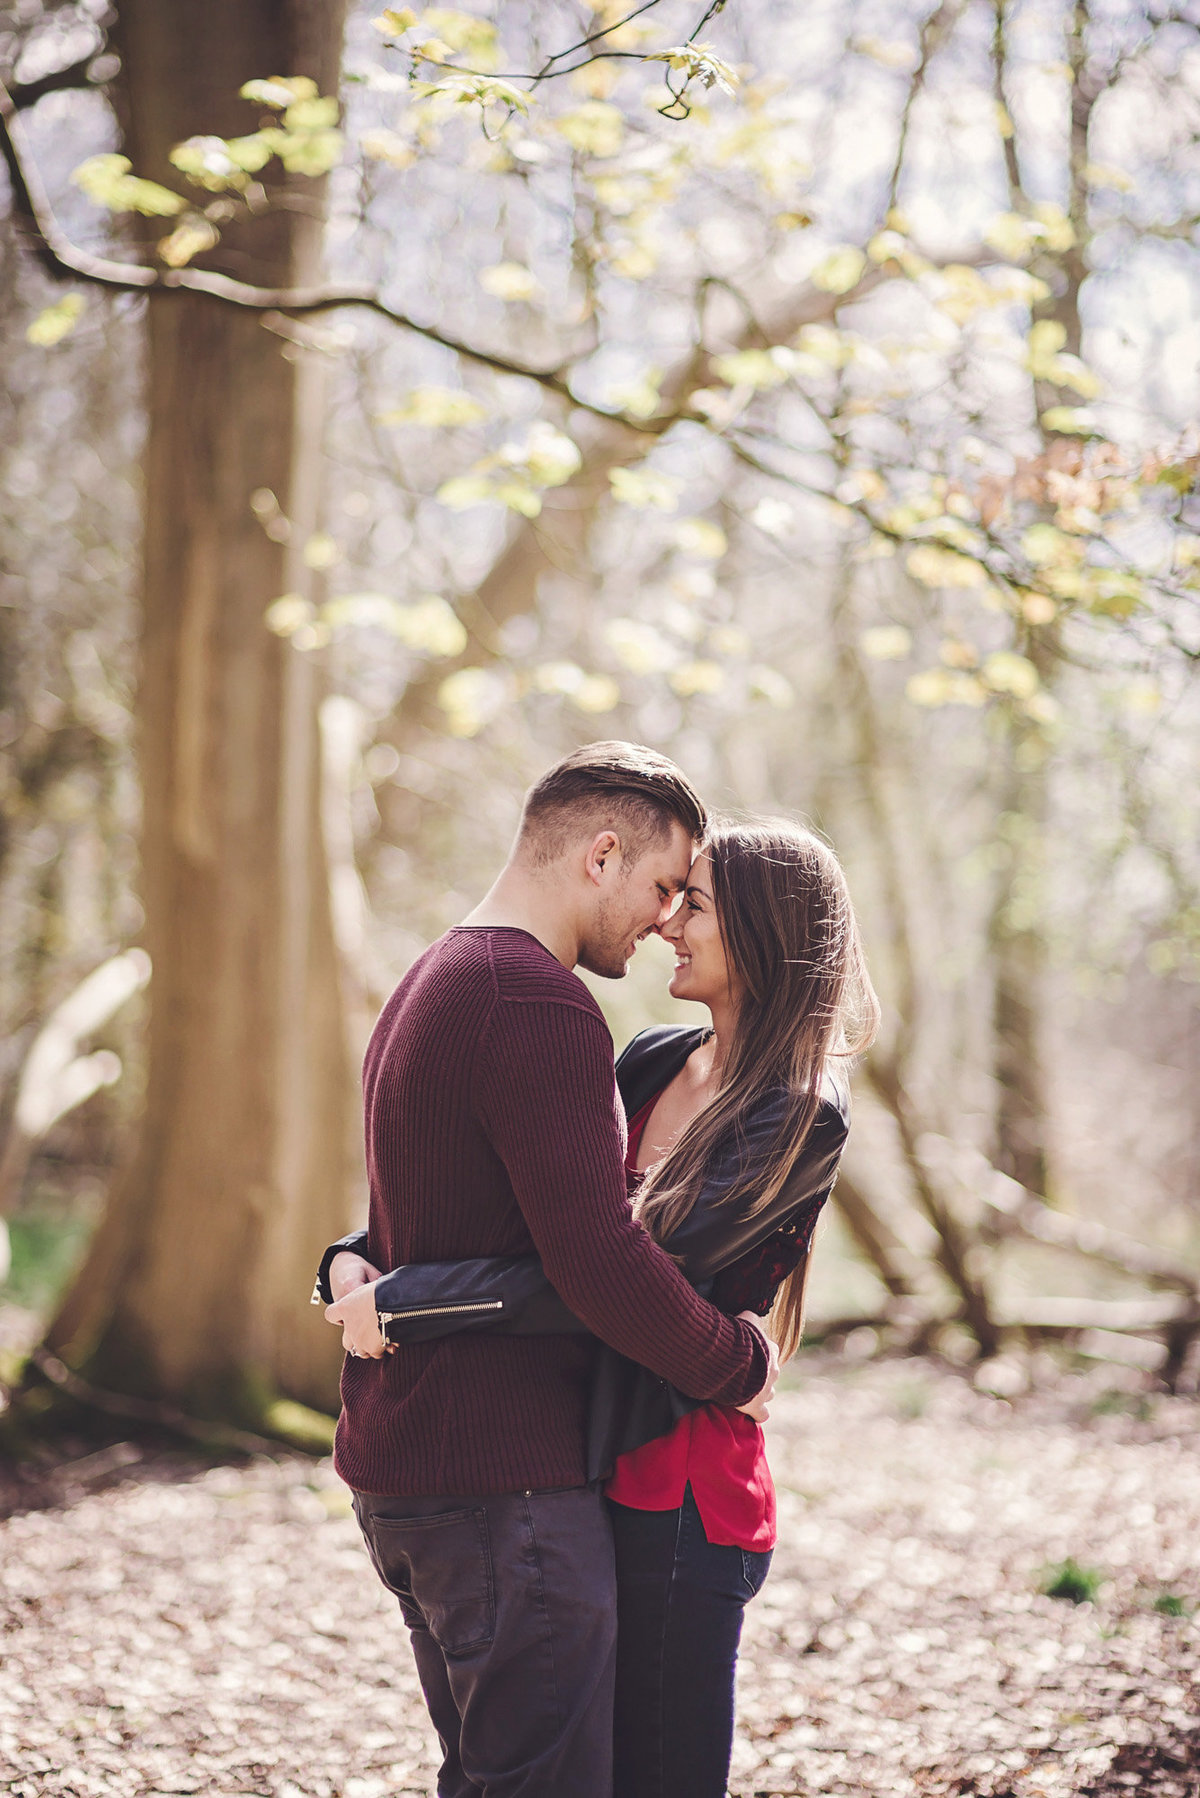 Engagement photography hertfordshire buckinghamshire london uk (27 of 34)